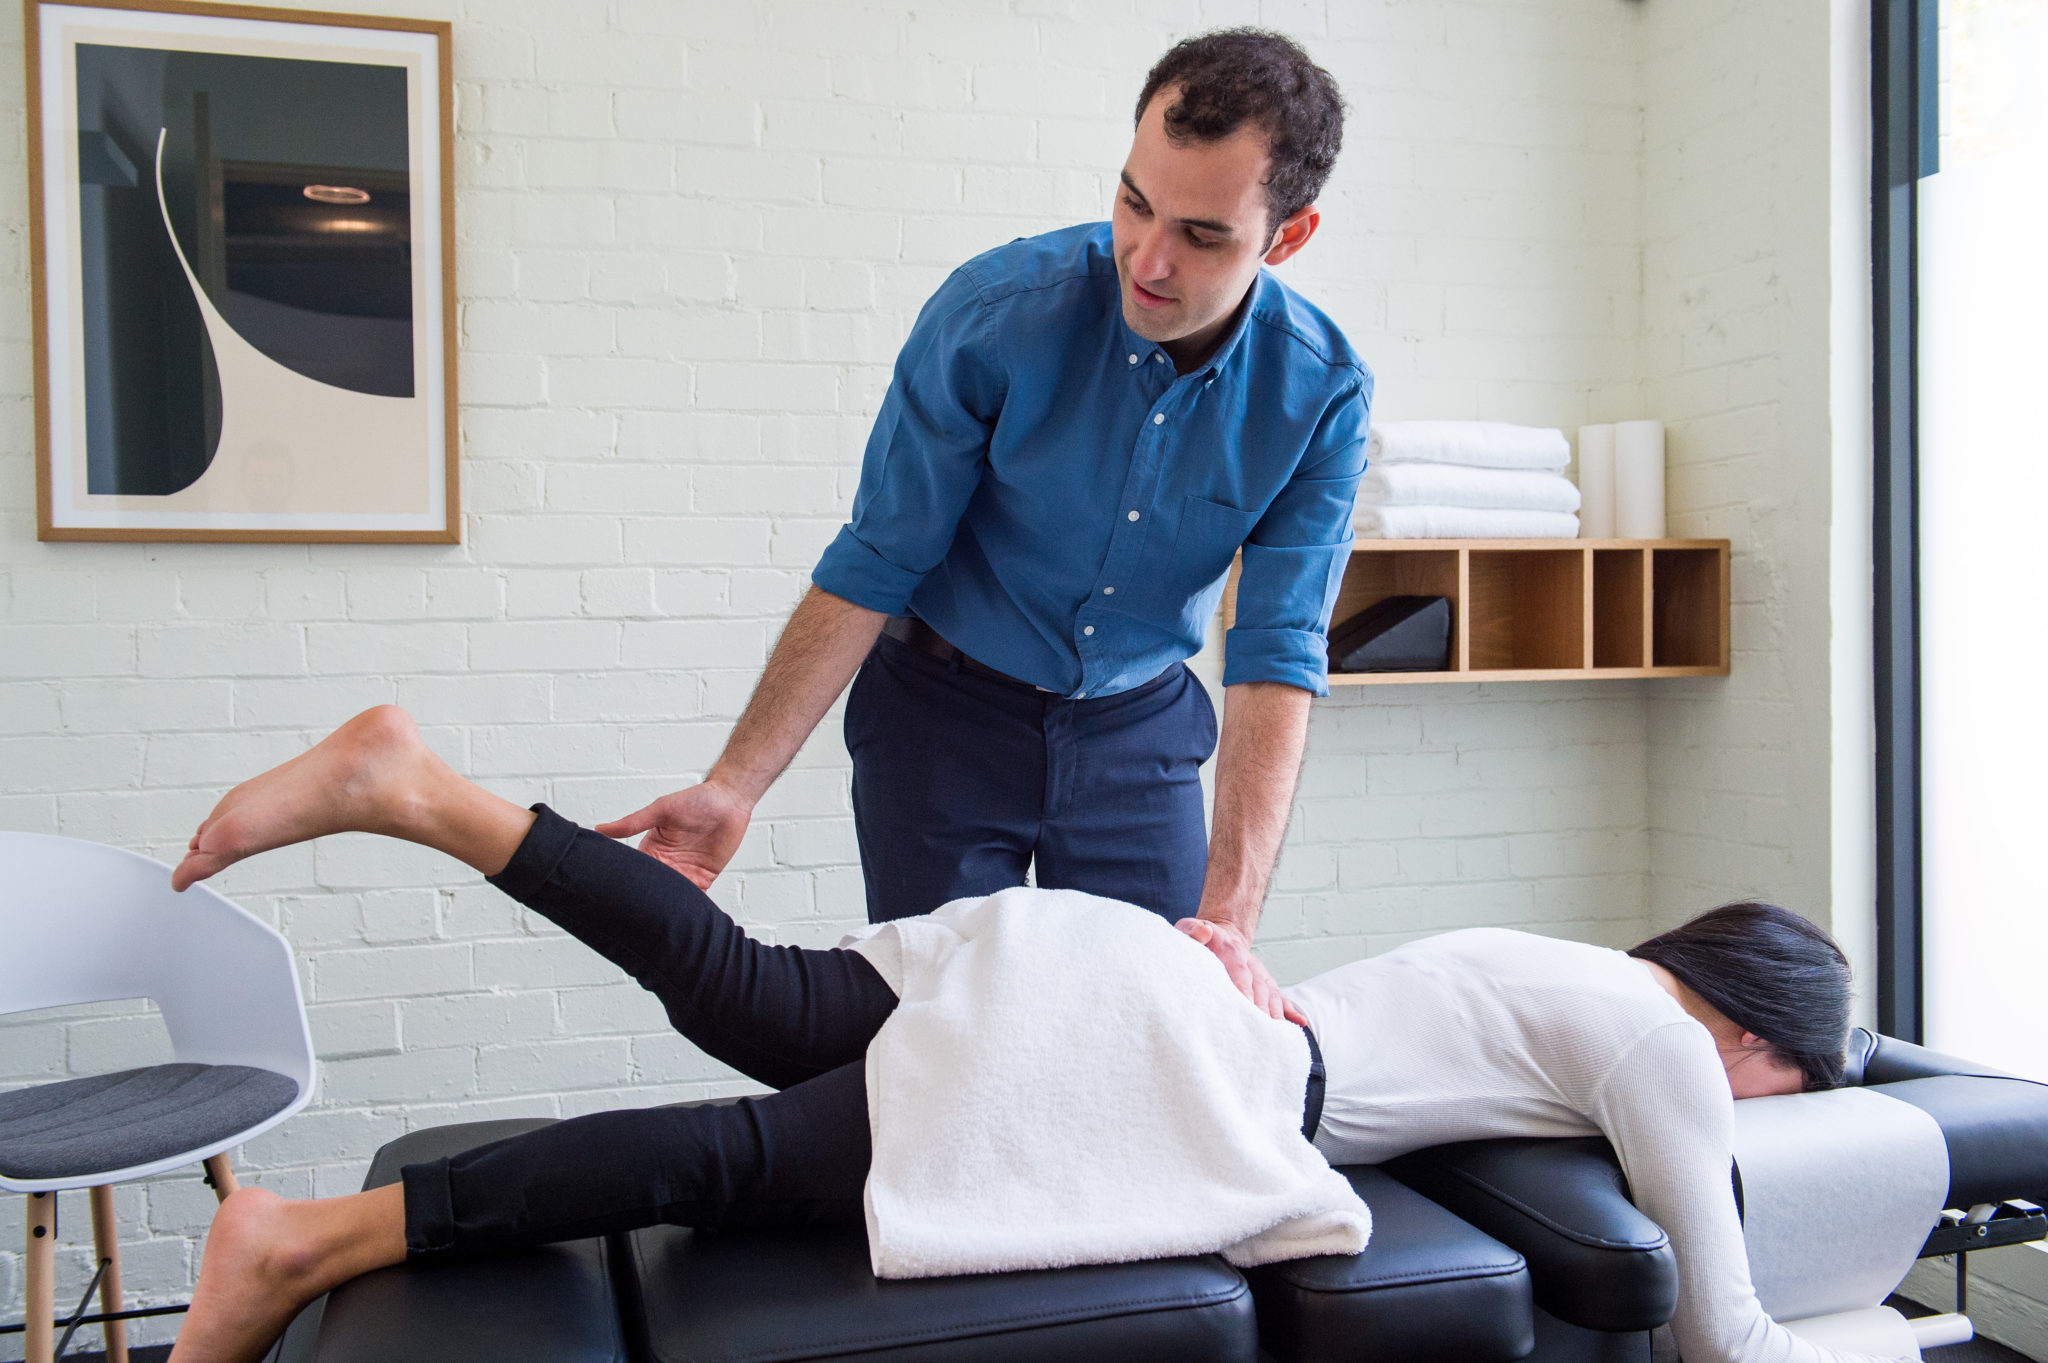 evan-sgammotta-chiropractic-adjustment